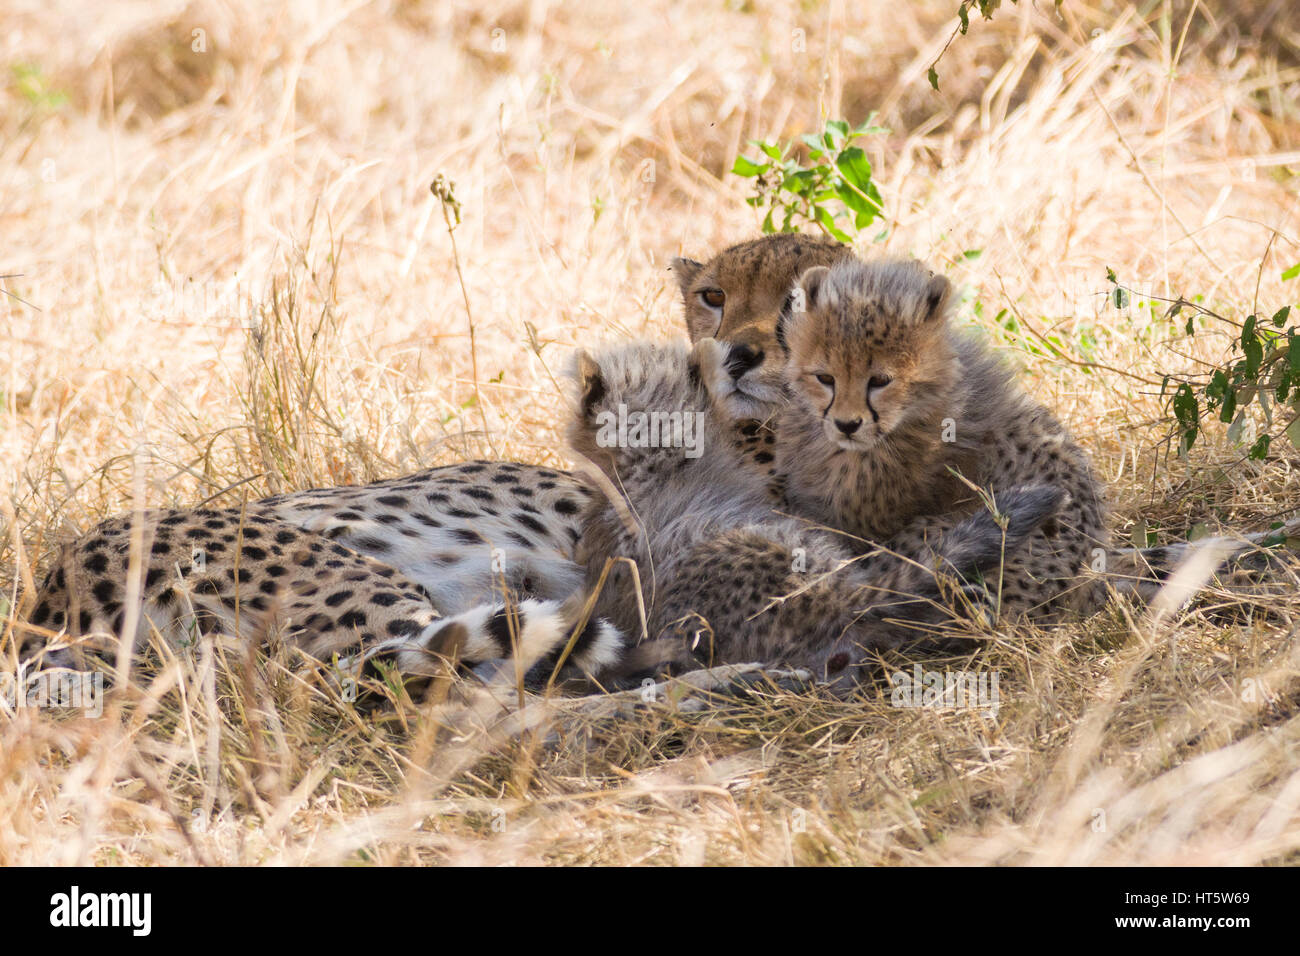 Female cheetah resting in dry grass with baby cubs (Acinonyx jubatus), Maasai Mara National Reserve, Kenya, East - Stock Image